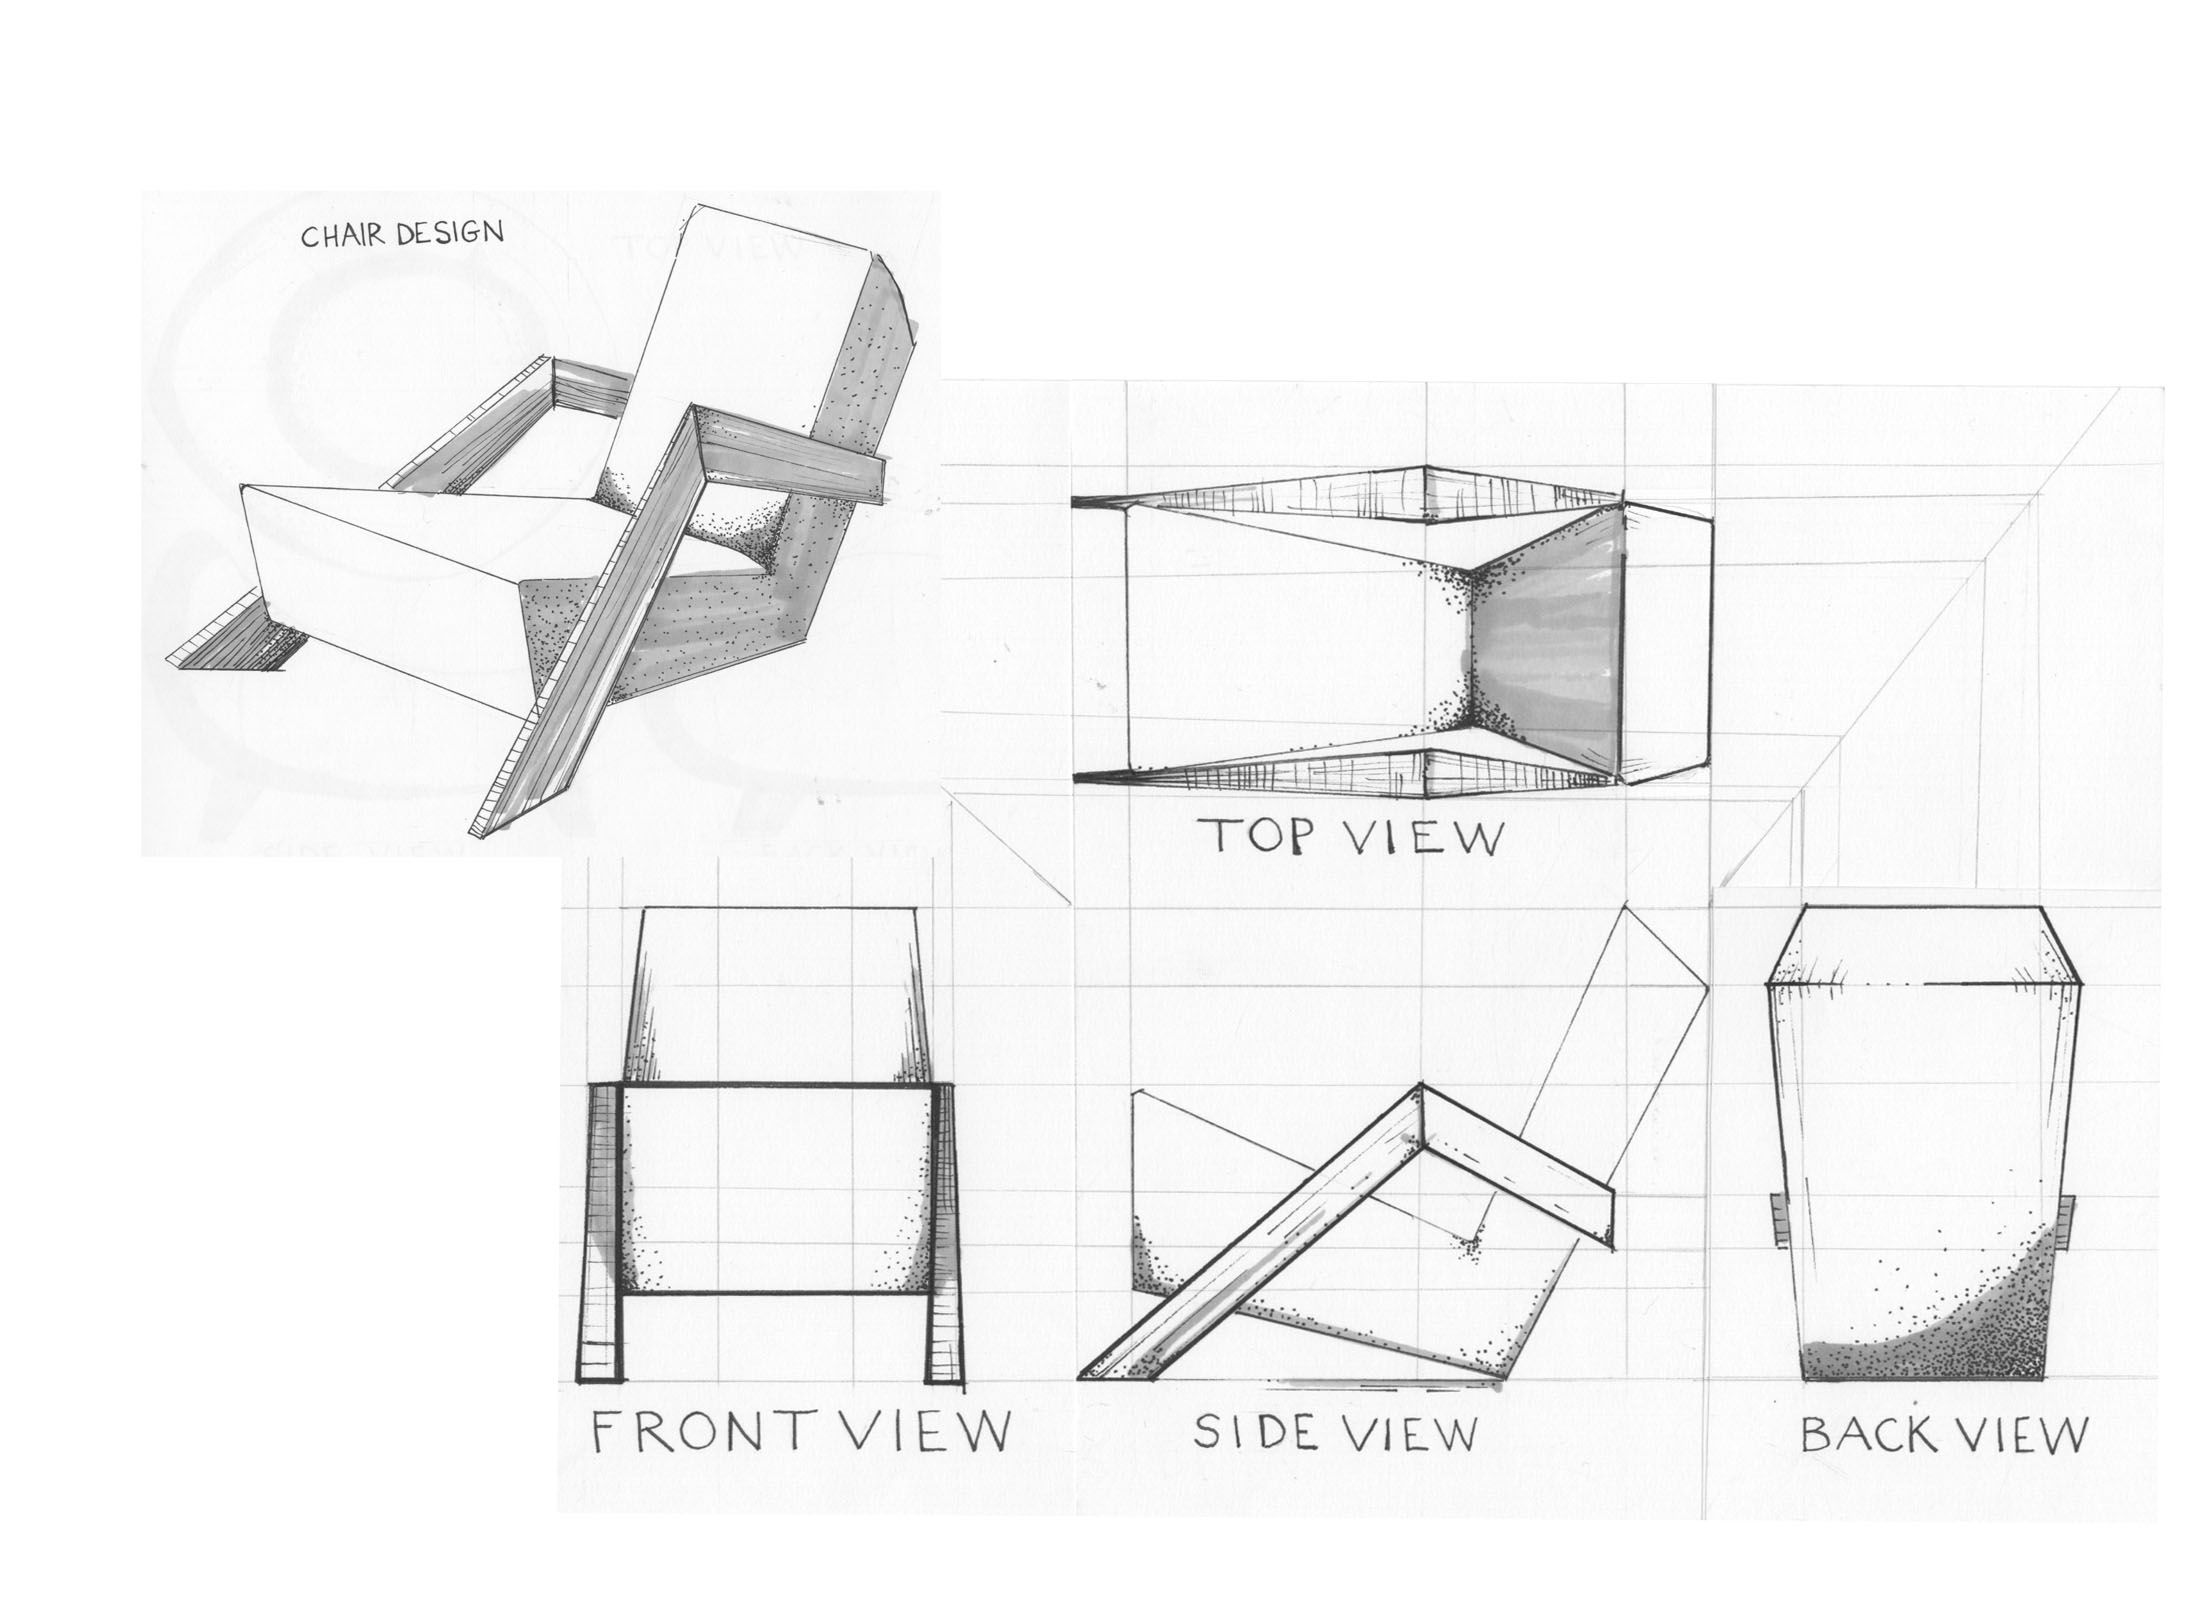 Pin By Lisa On Orthographic Drawing Cool Chairs Comfy Chairs Upholstered Dining Chairs